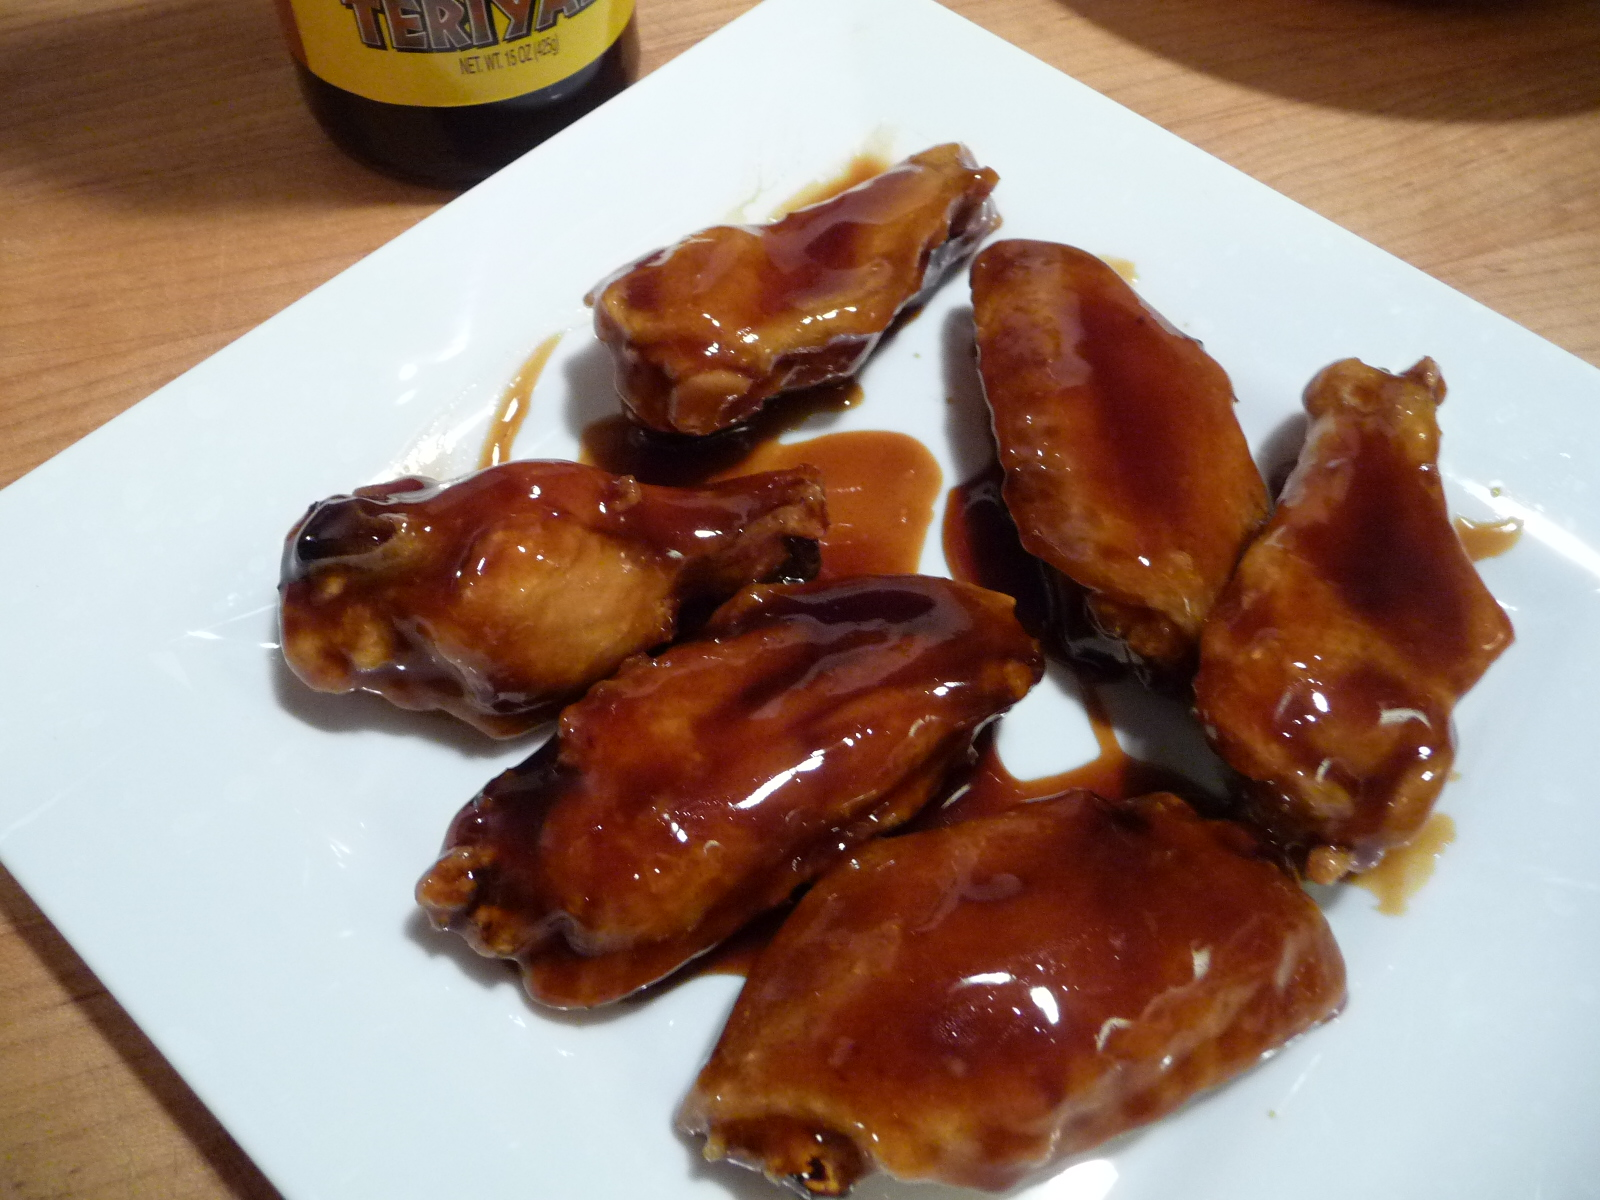 wy's teriyaki sauce on wings